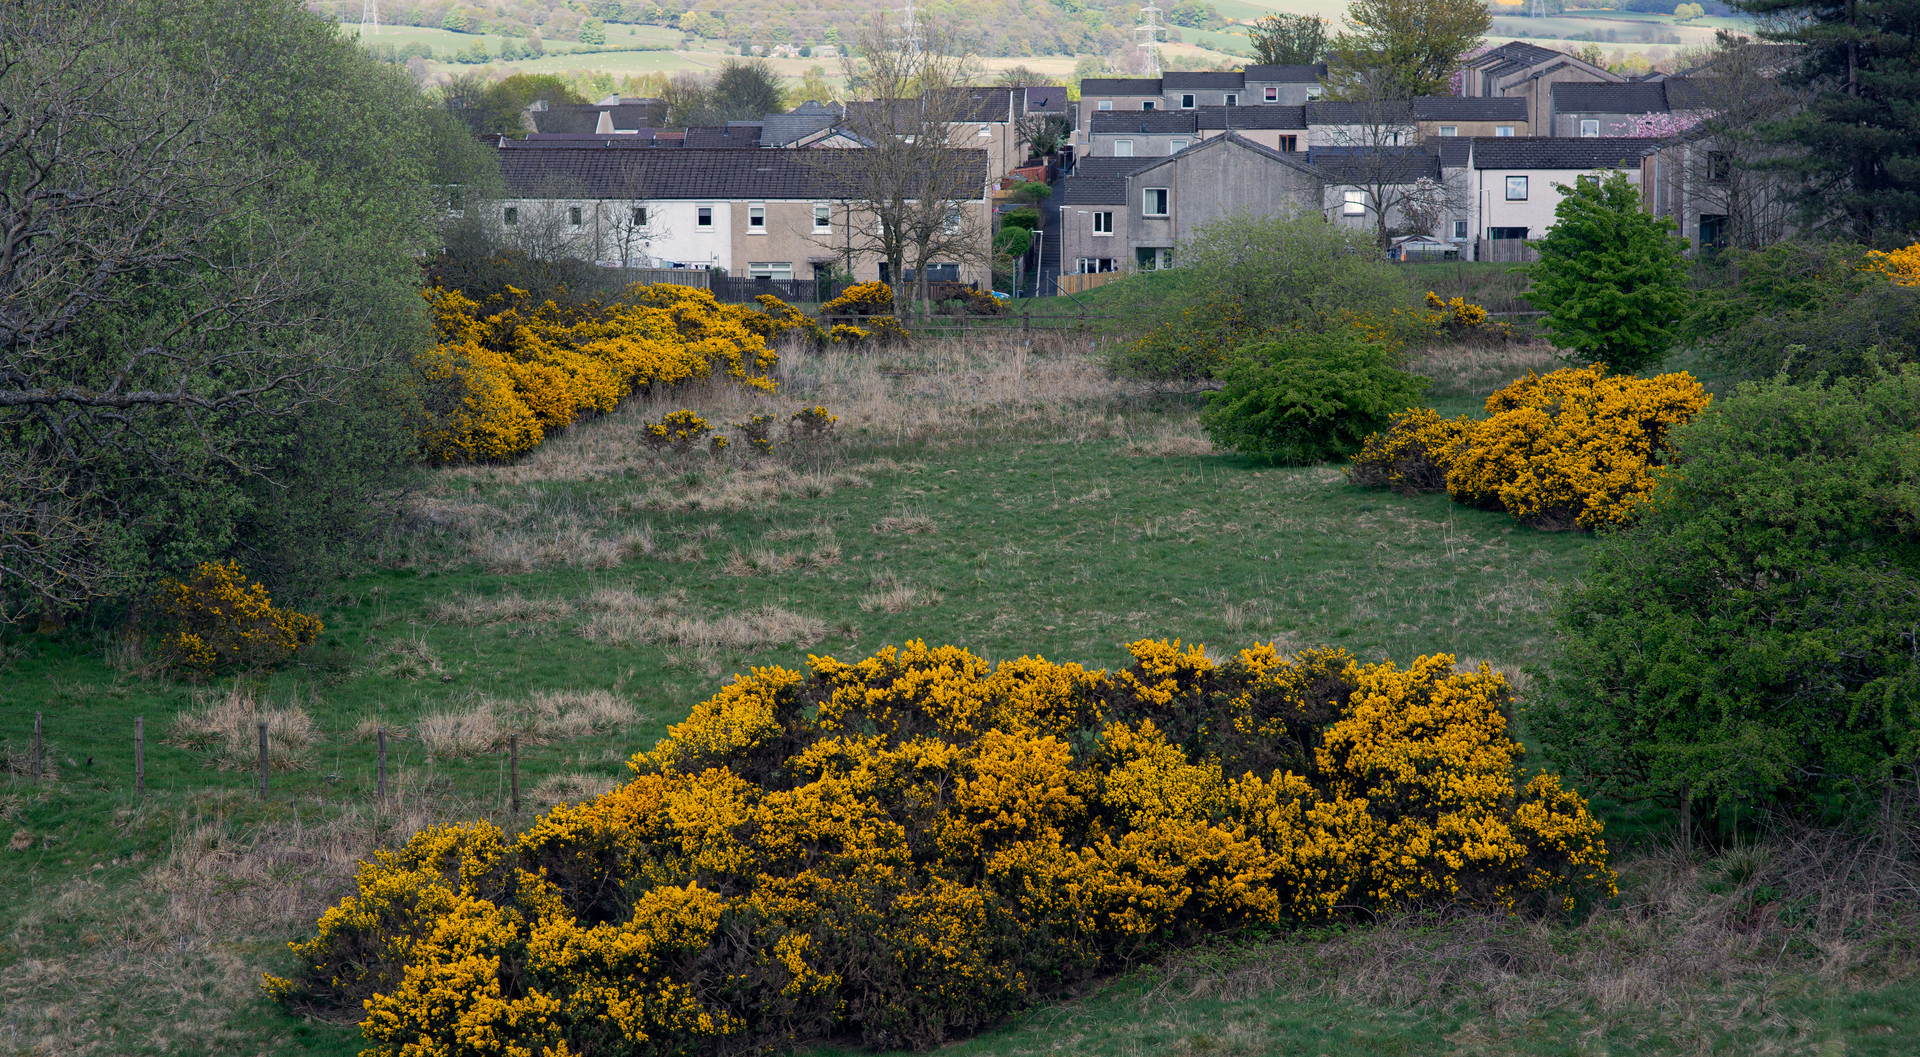 overspill | denny | braes view